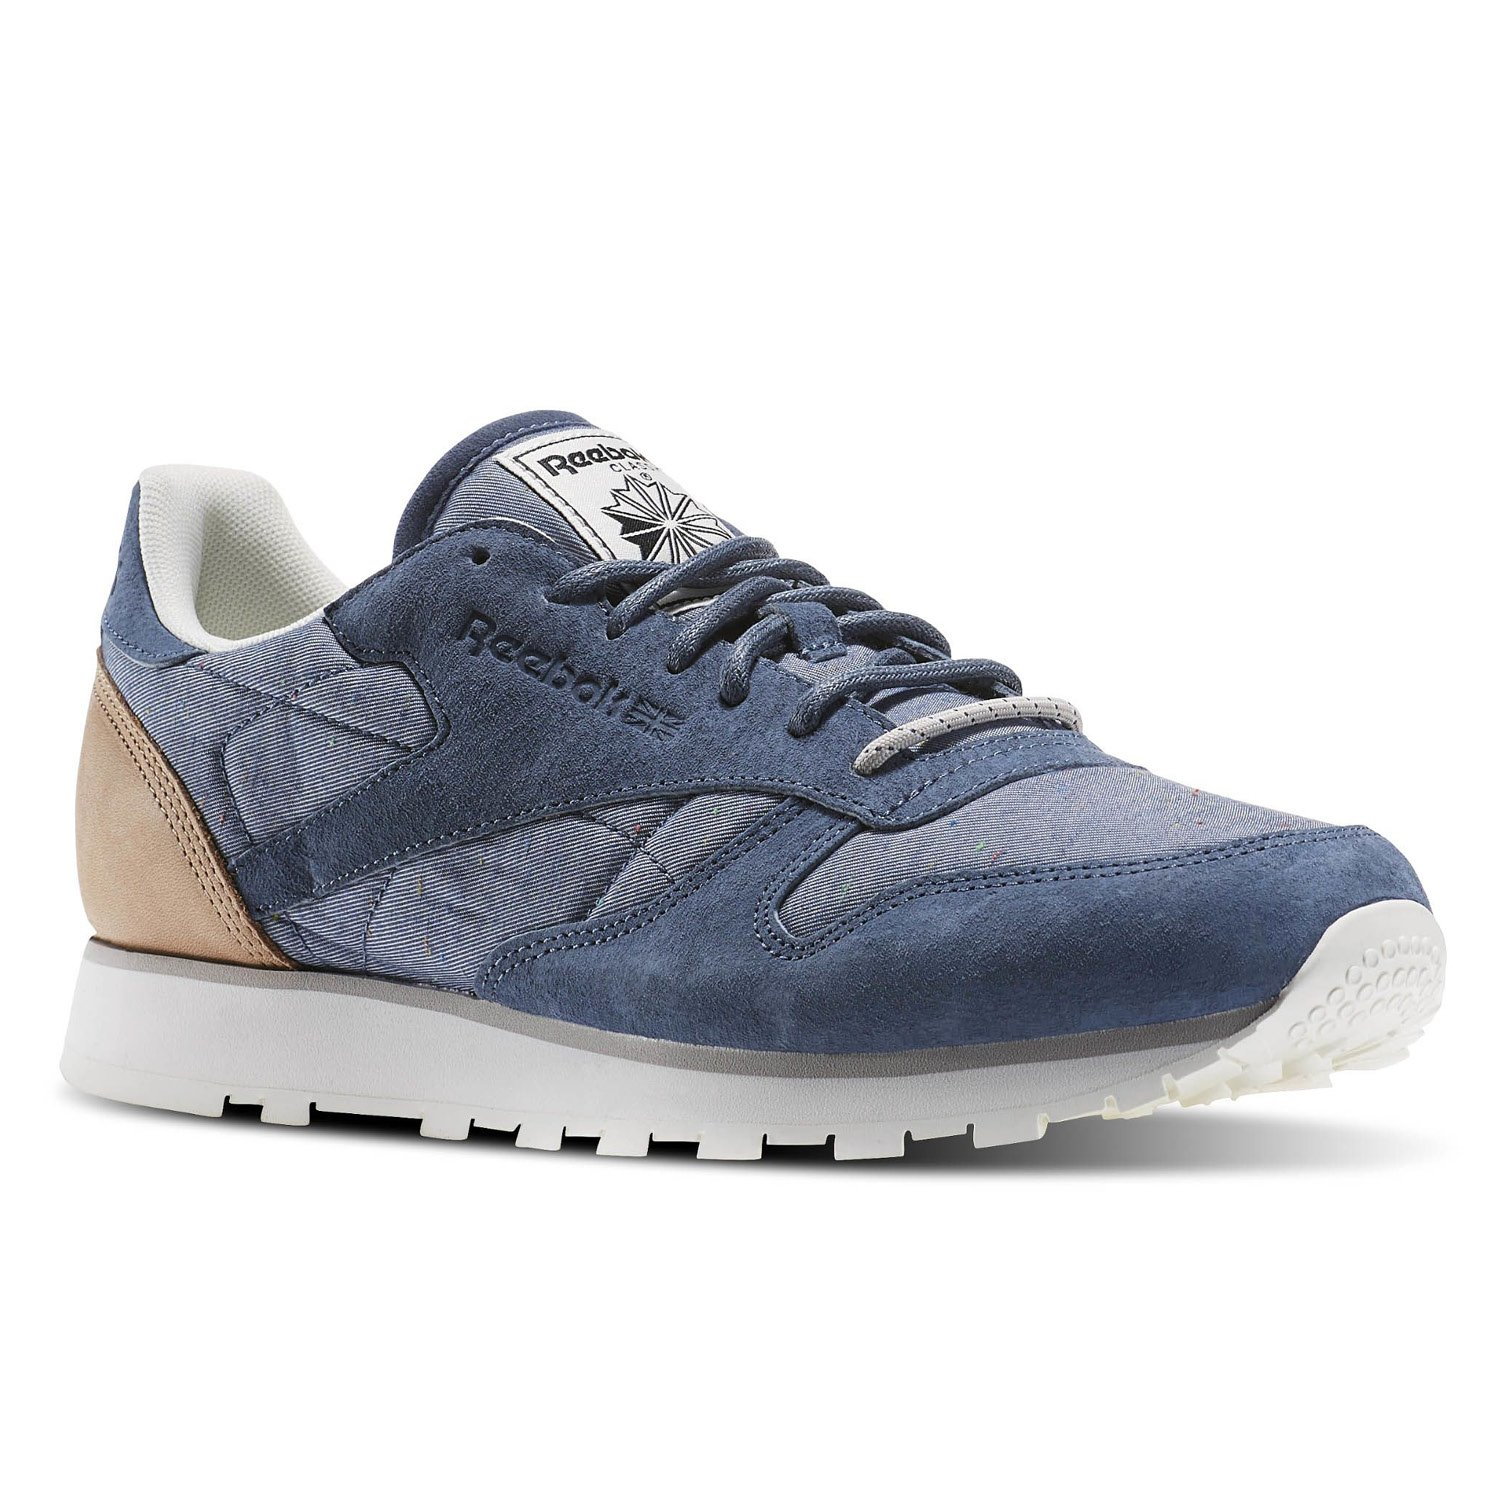 Reebok Classic Leather Fleck AQ9722